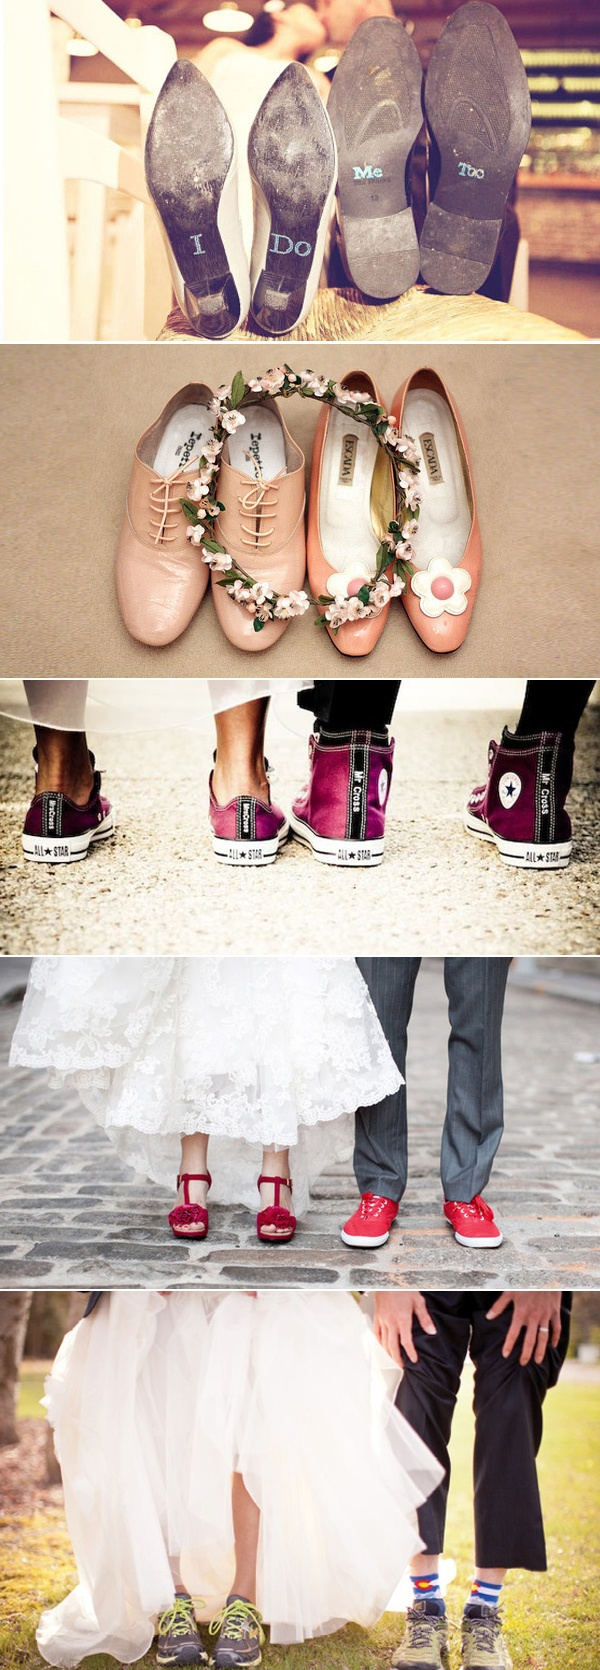 best images about ideas for partiesweddings on pinterest the